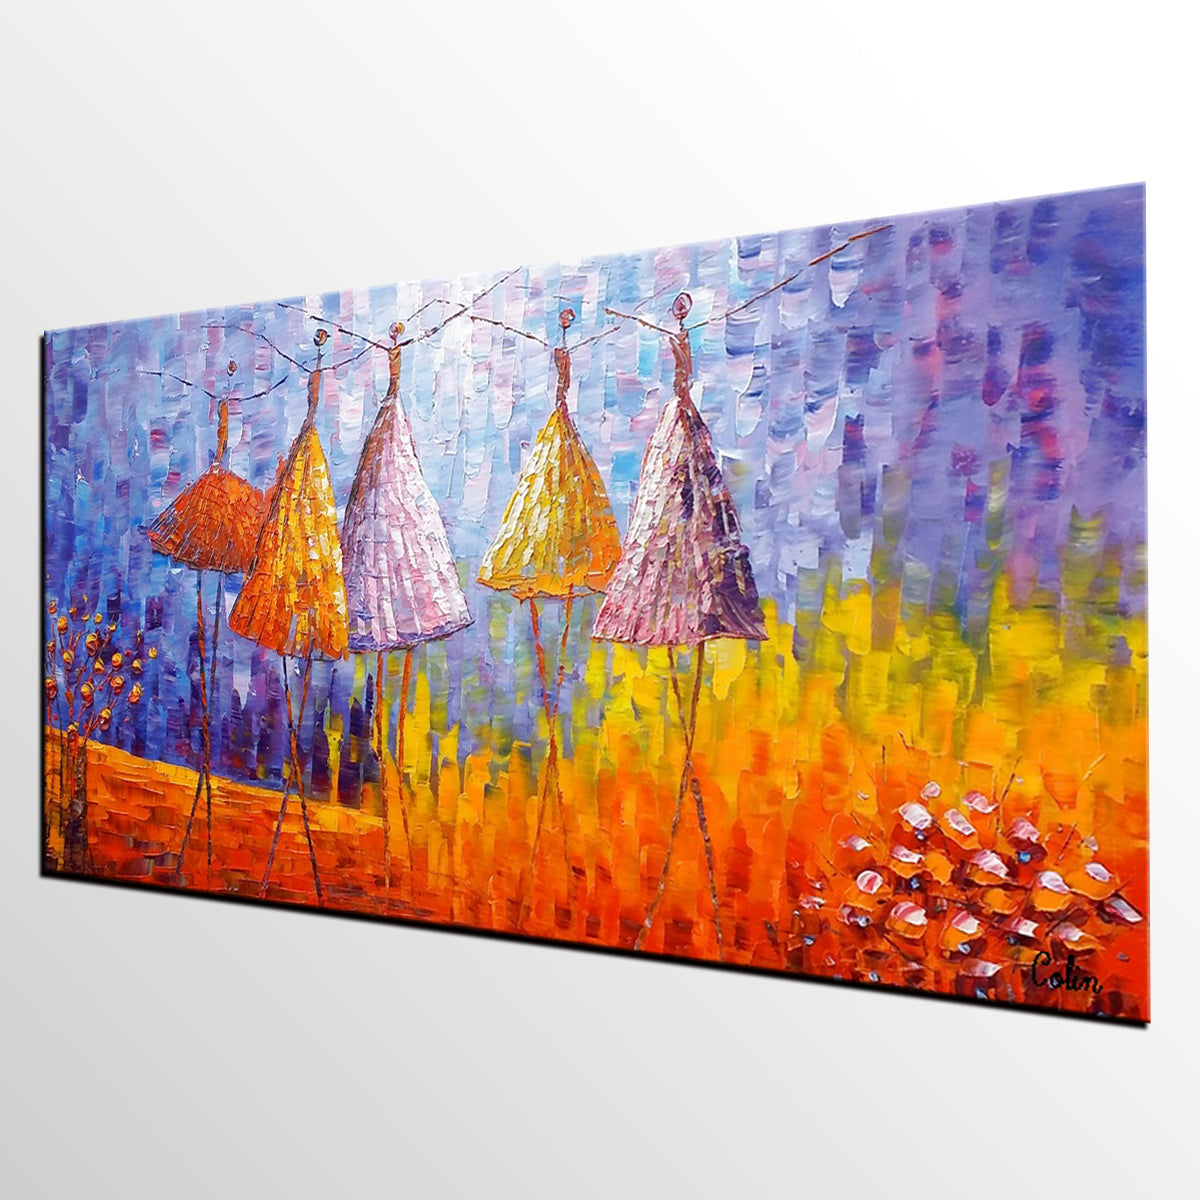 Abstract Landscape Painting, Ballet Dancer Painting, Oil Painting, Abstract Painting, Large Art, Canvas Art, Wall Art, Canvas Painting, Impasto Art